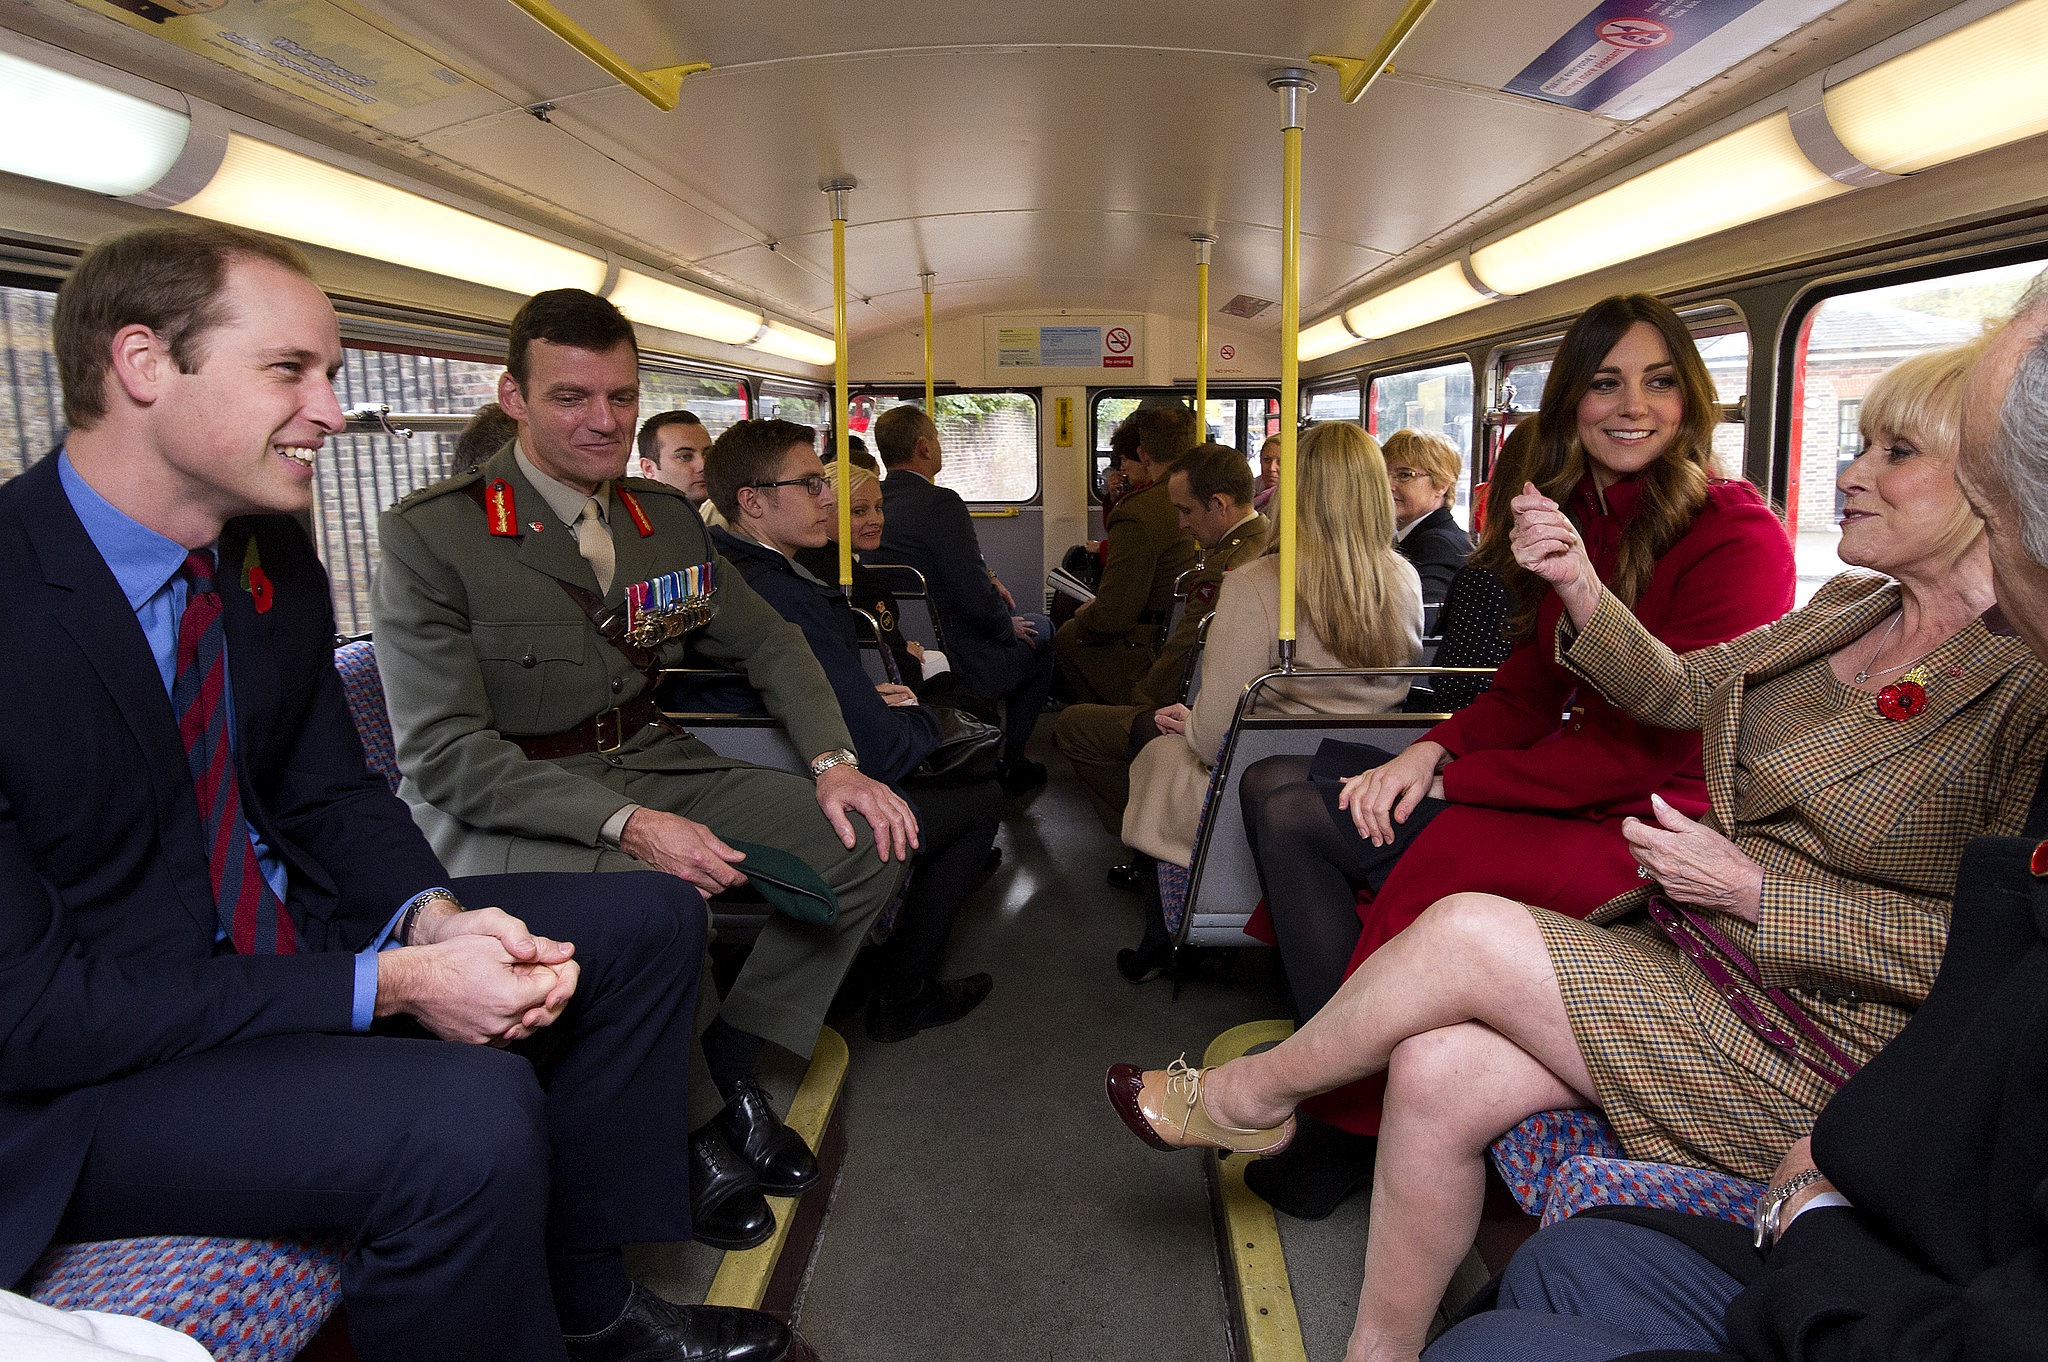 In November 2013, Kate rode the bus with William for Poppy Day in London.